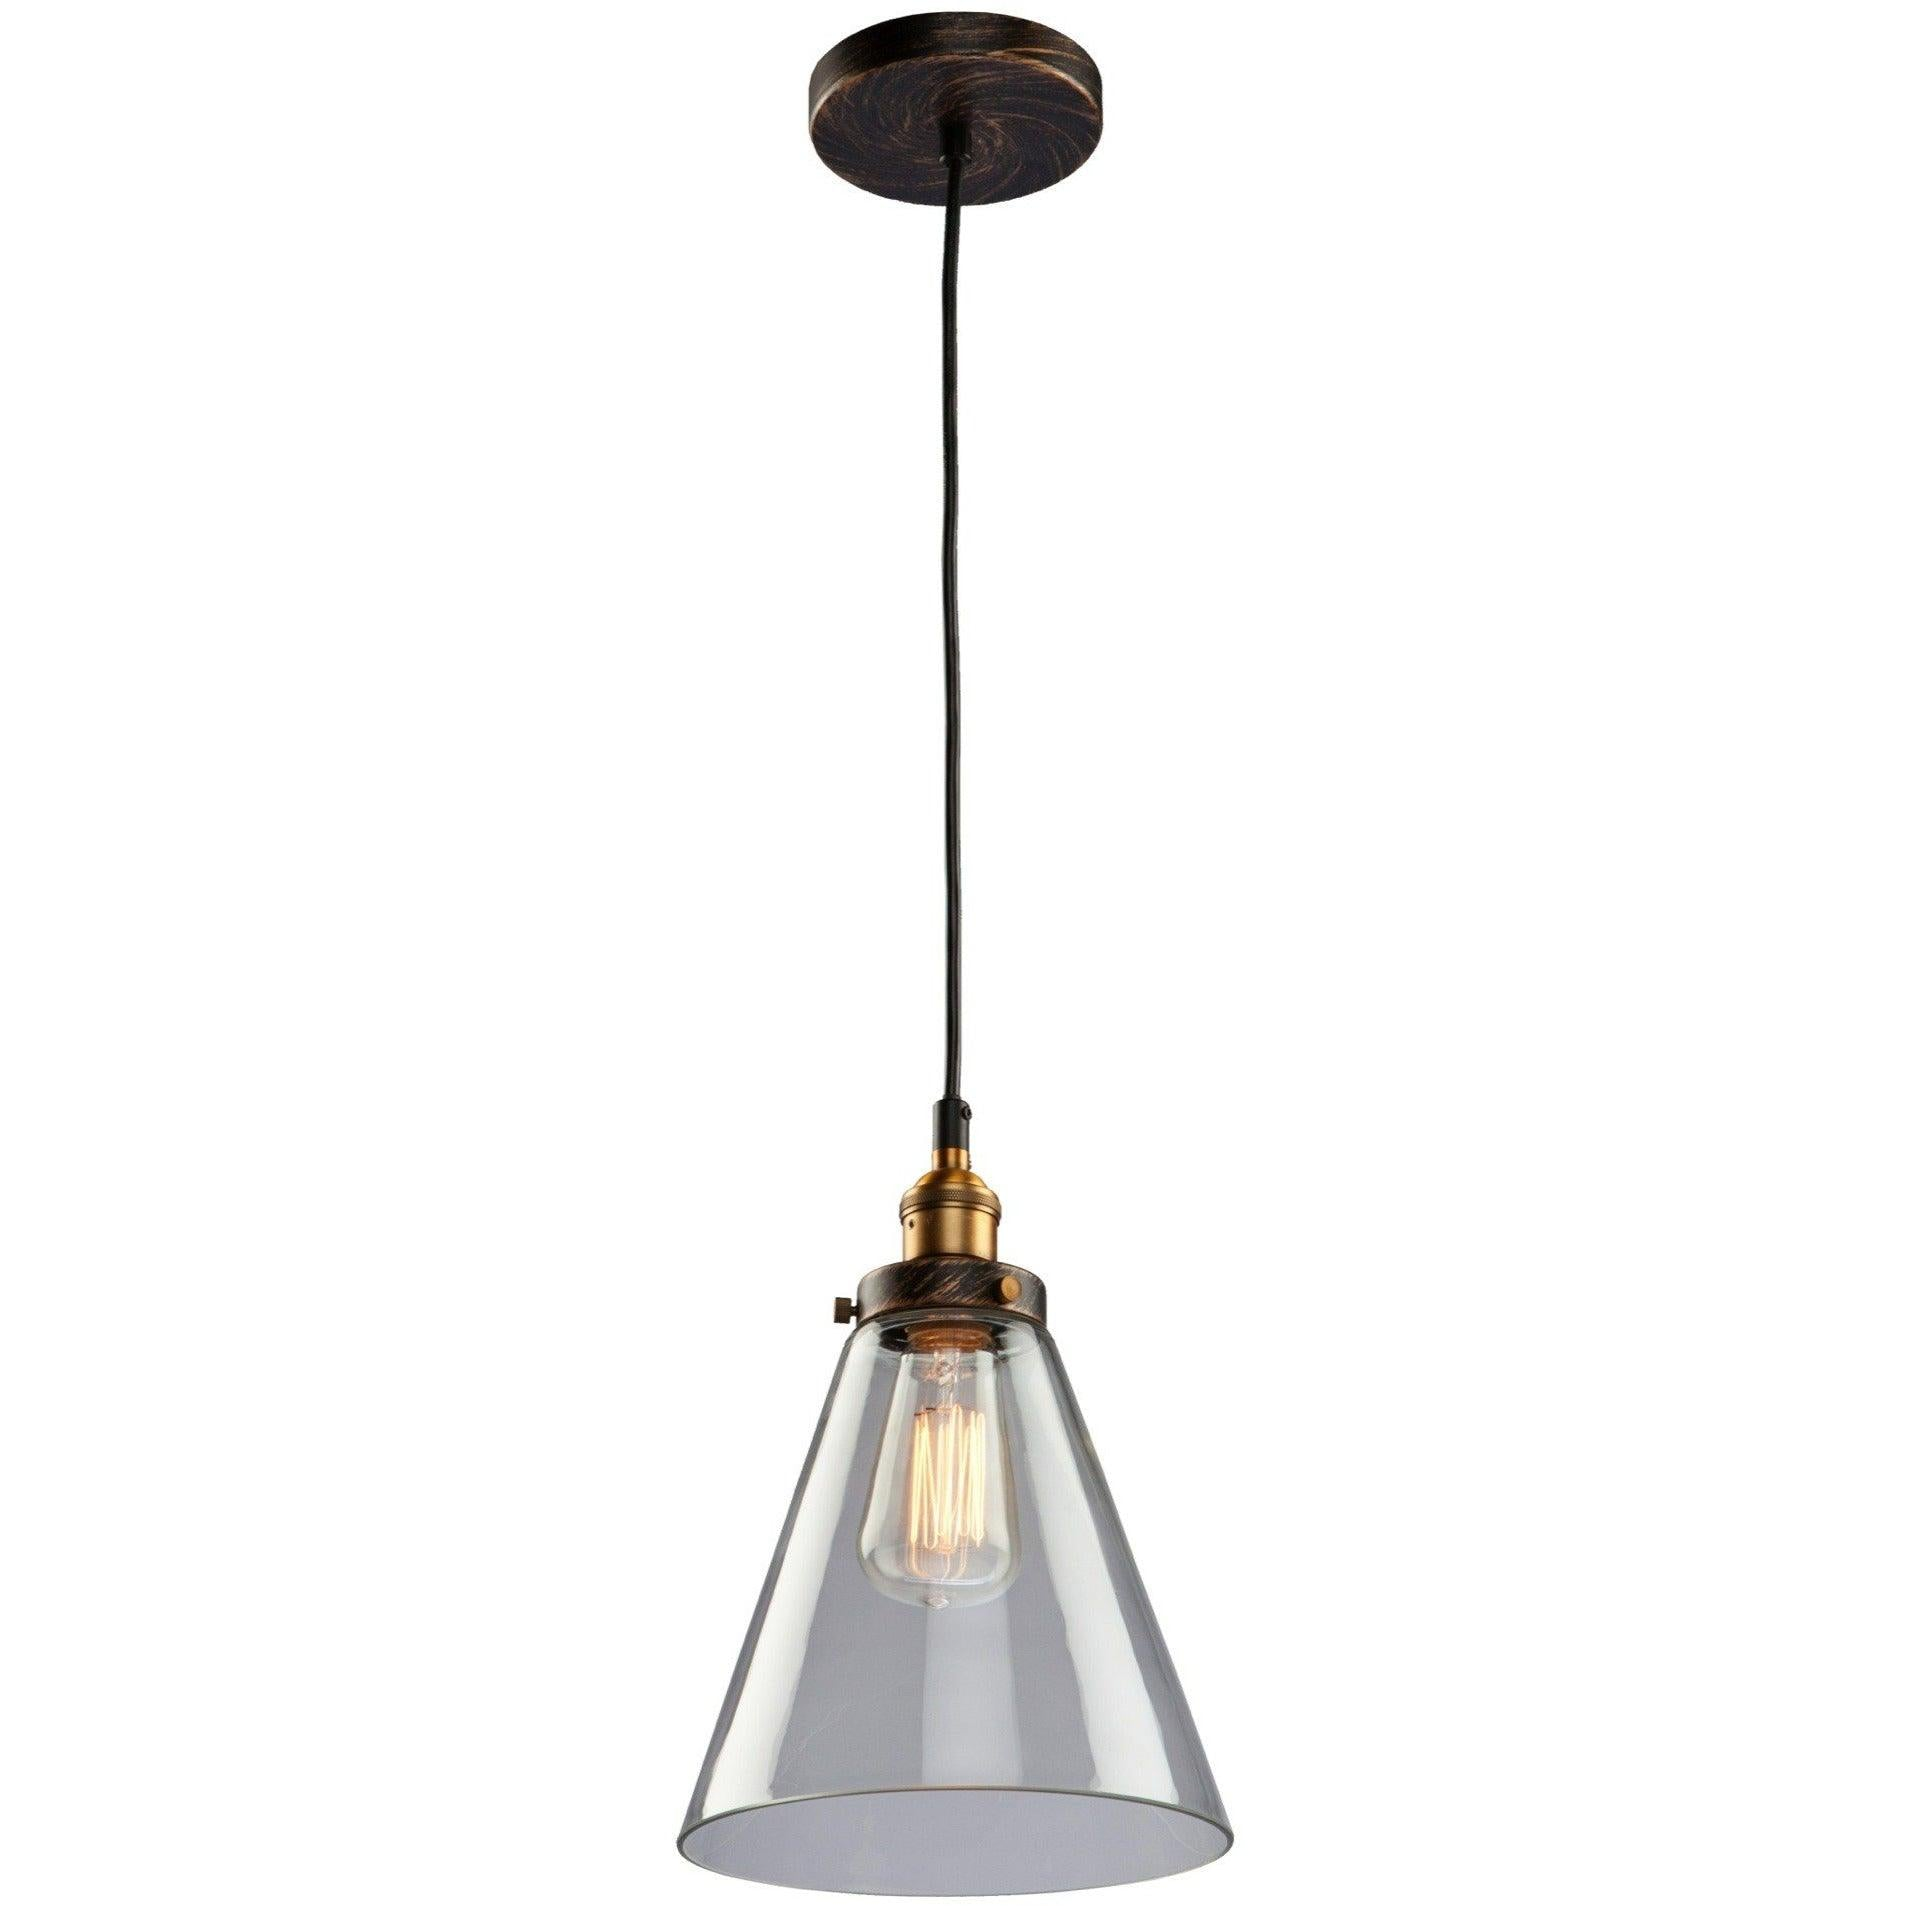 Artcraft Lighting - AC10166 - One Light Pendant - Greenwich - Bronze & Copper